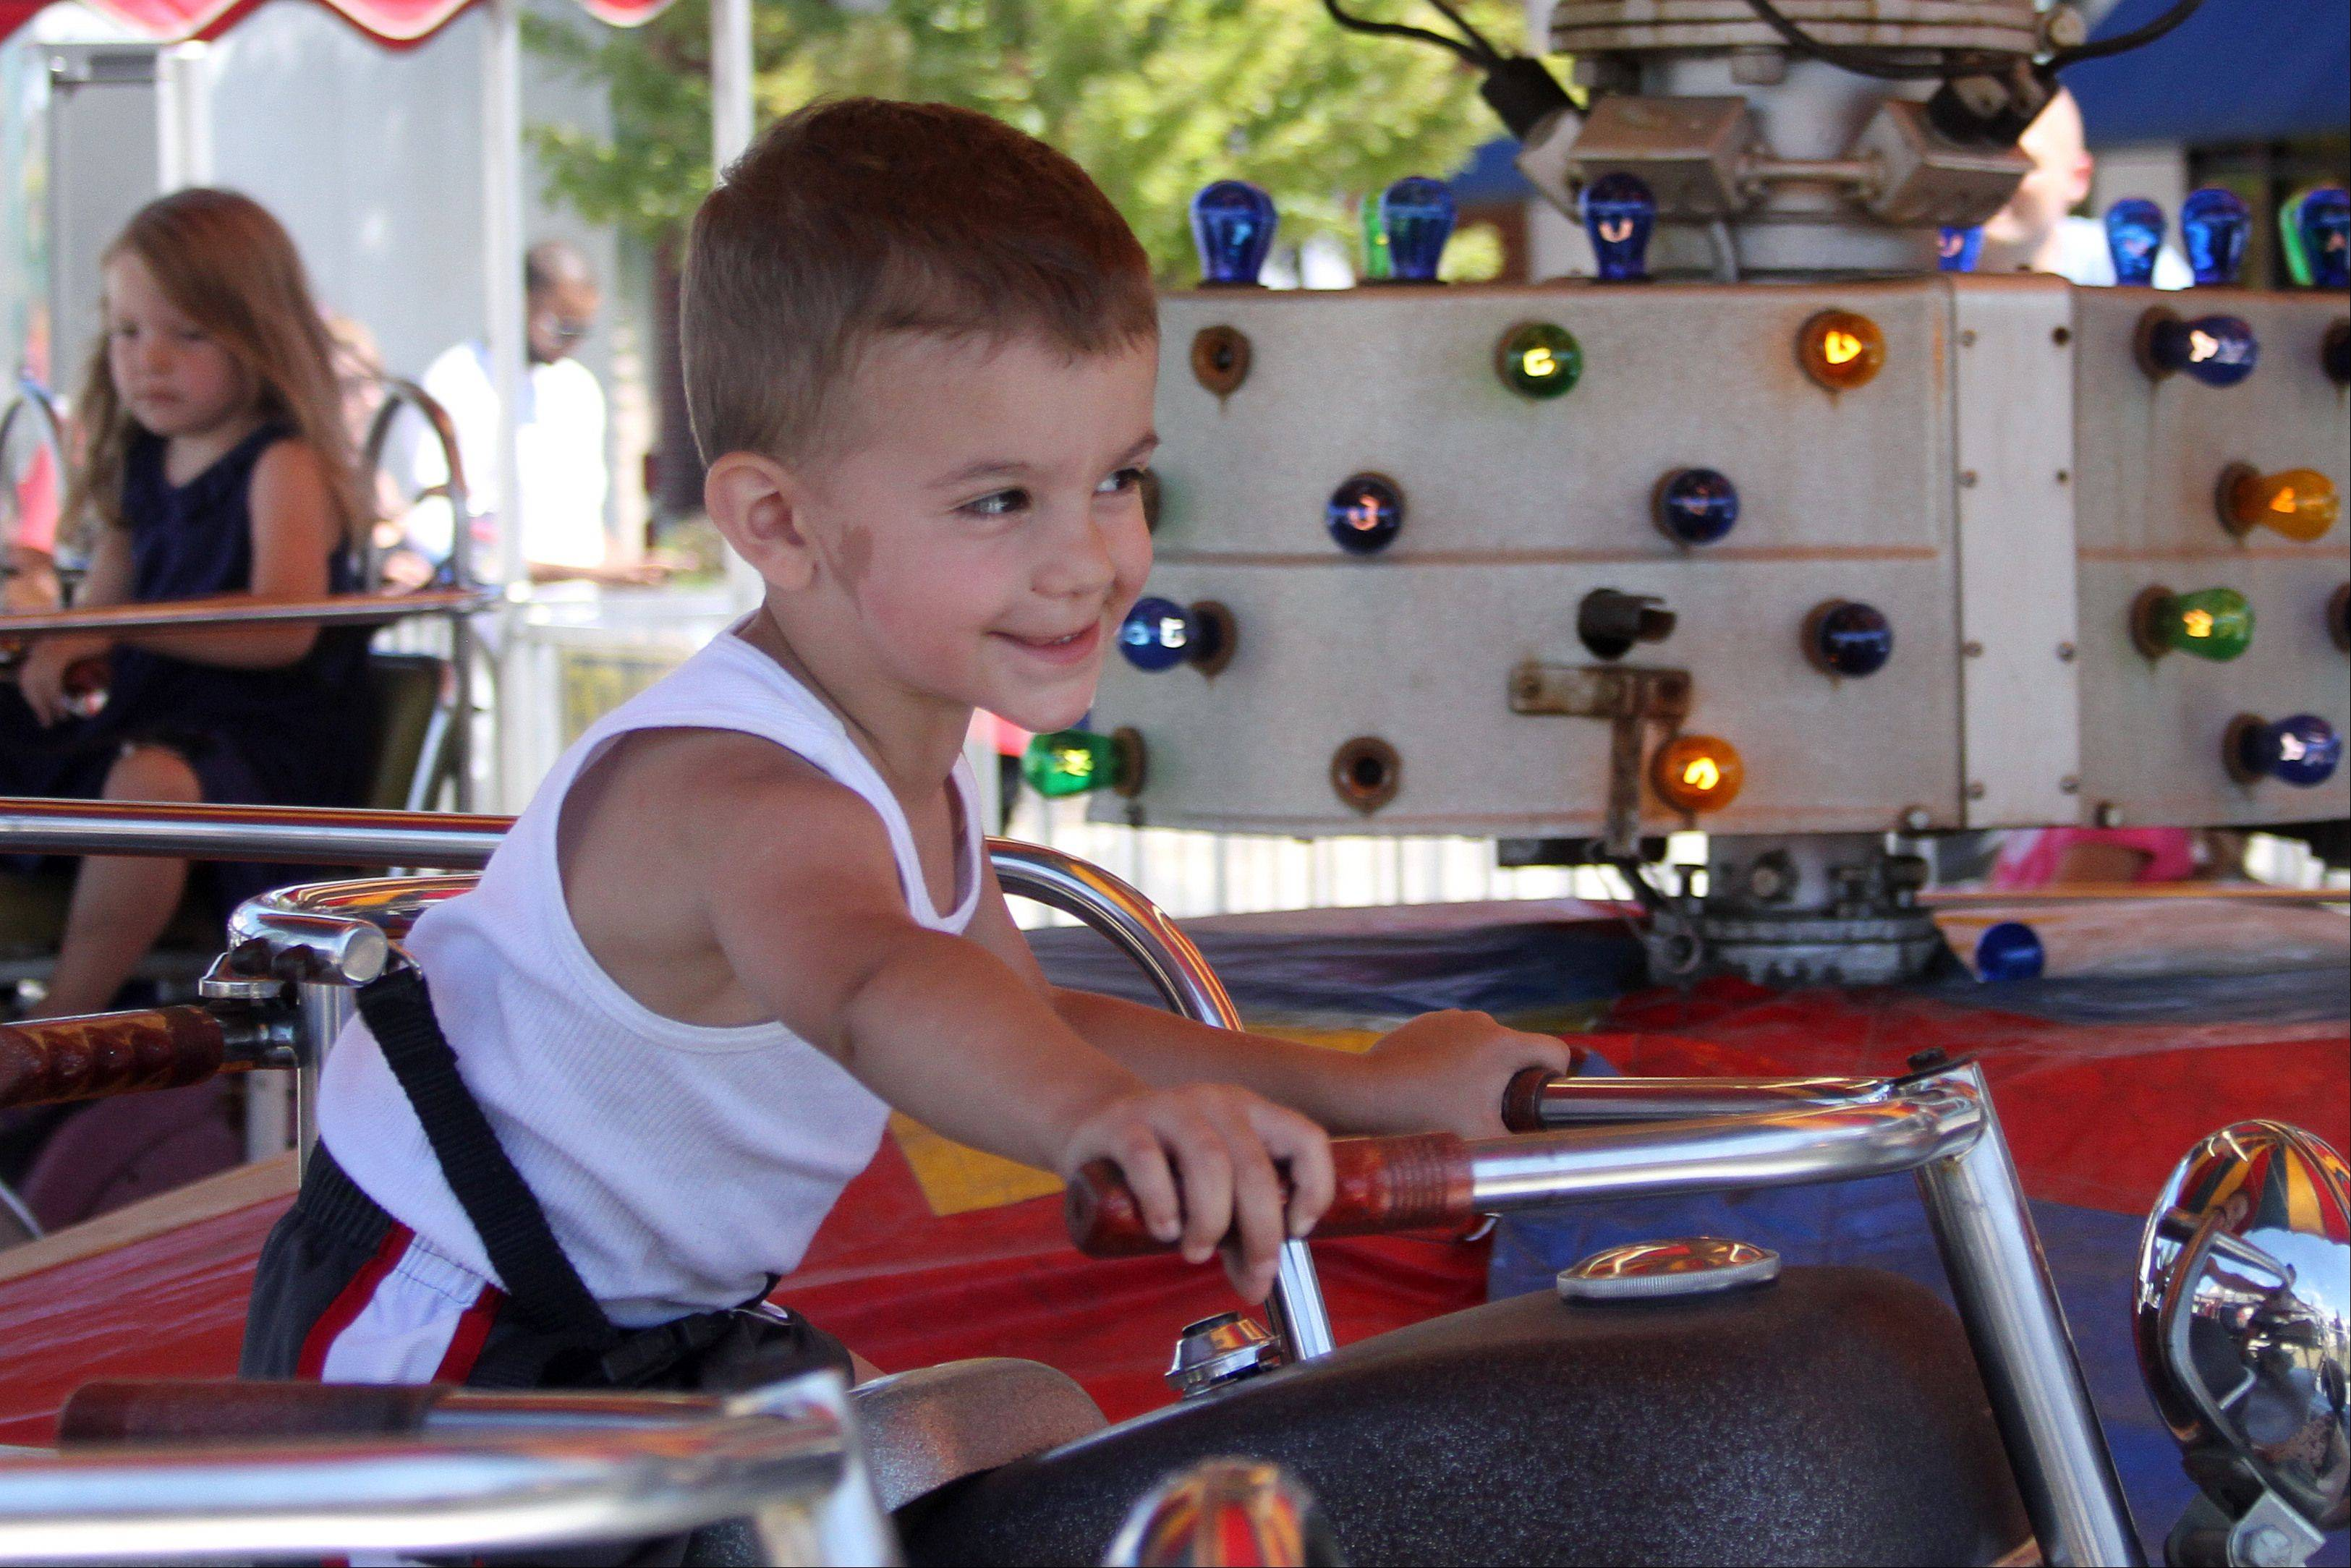 Vincenzo Camarata, 2, of Roselle, rides a motorcycle at the 2013 Taste of Roselle on Saturday, August 3, 2013. The three-day festival opened Friday and ends Sunday.